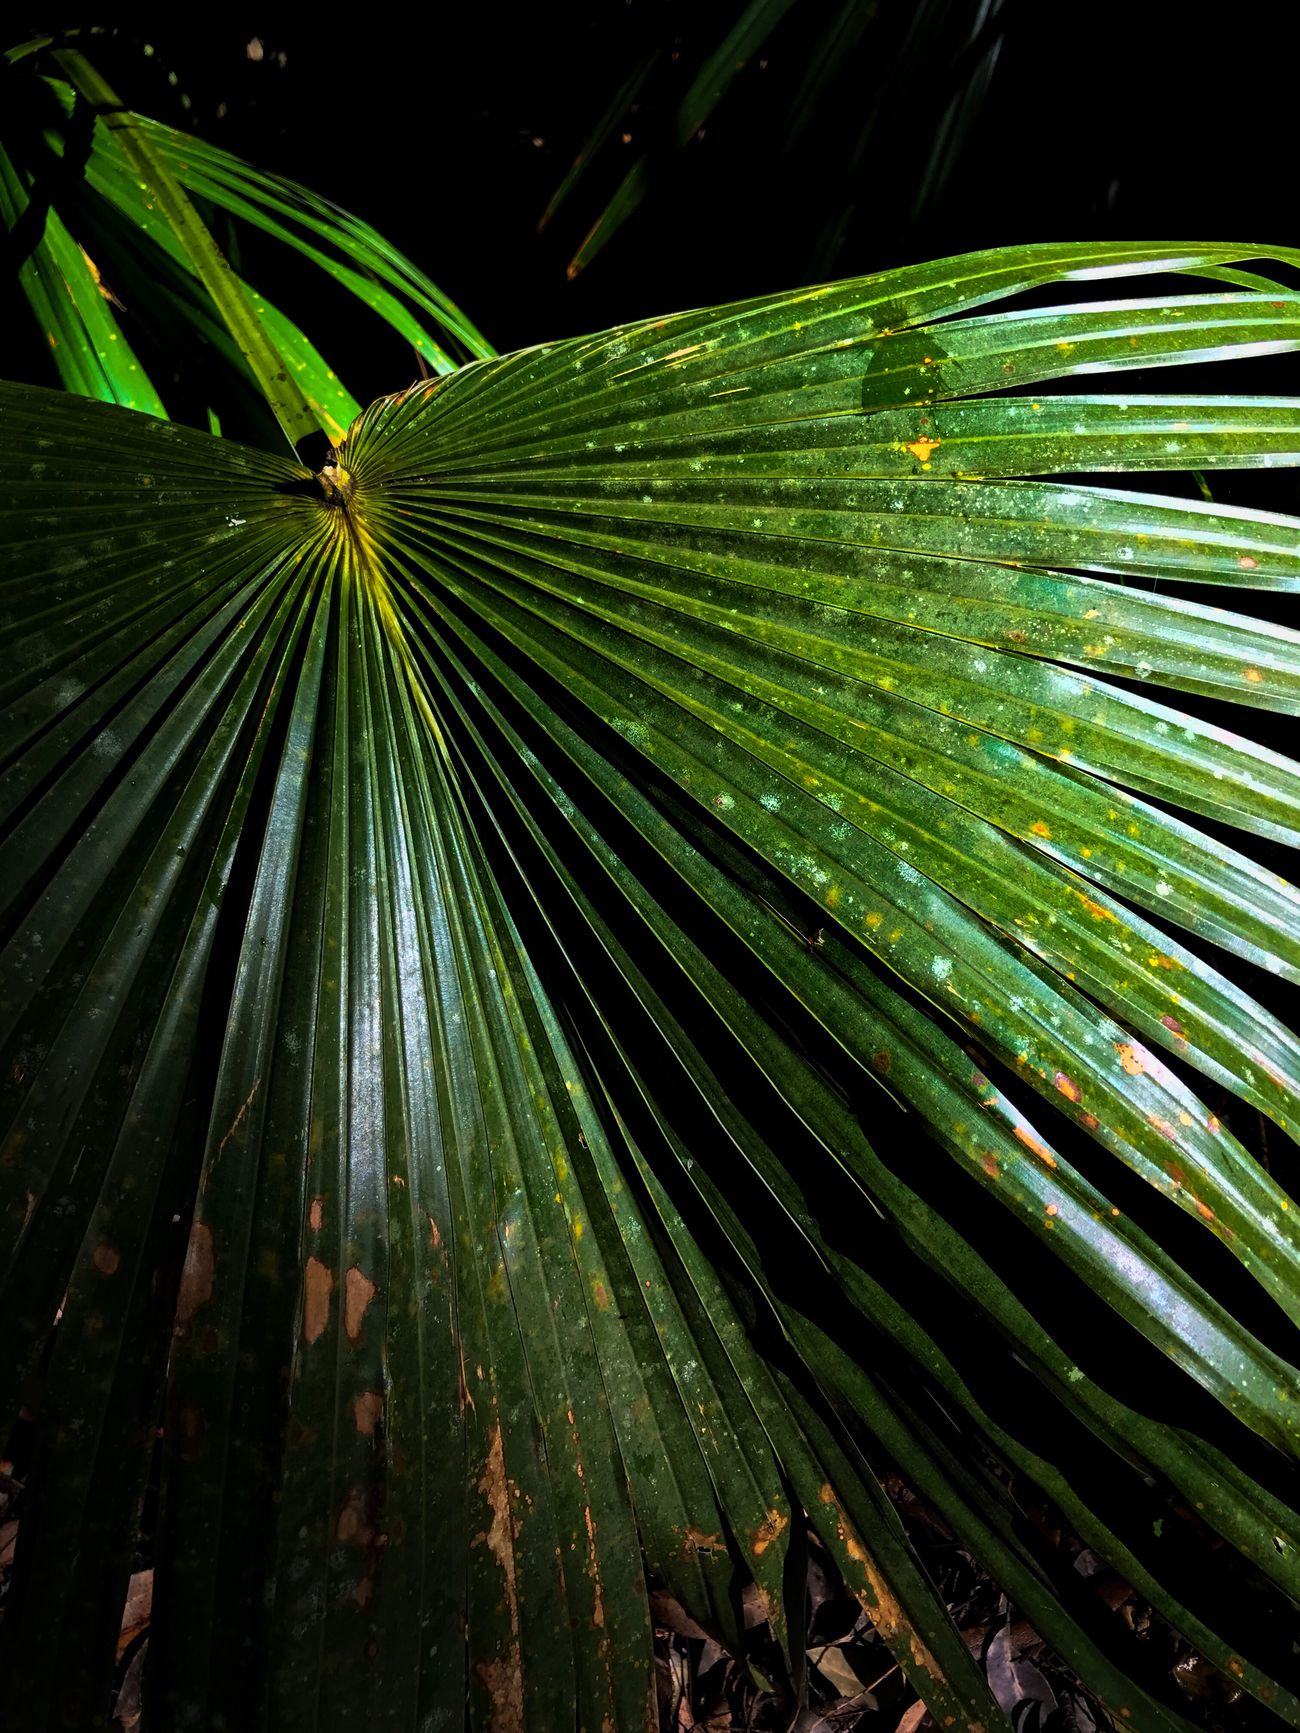 Sometimes the simple things are the most beautiful Green Color Nature Leaf No People Frond Growth Outdoors Close-up Beauty In Nature Tranquility Palm Tree Plant Backgrounds Day Water Fragility Freshness Awesome_shots Special👌shot Nature_perfection Growth Beauty In Nature Low Angle View Adventure Explore